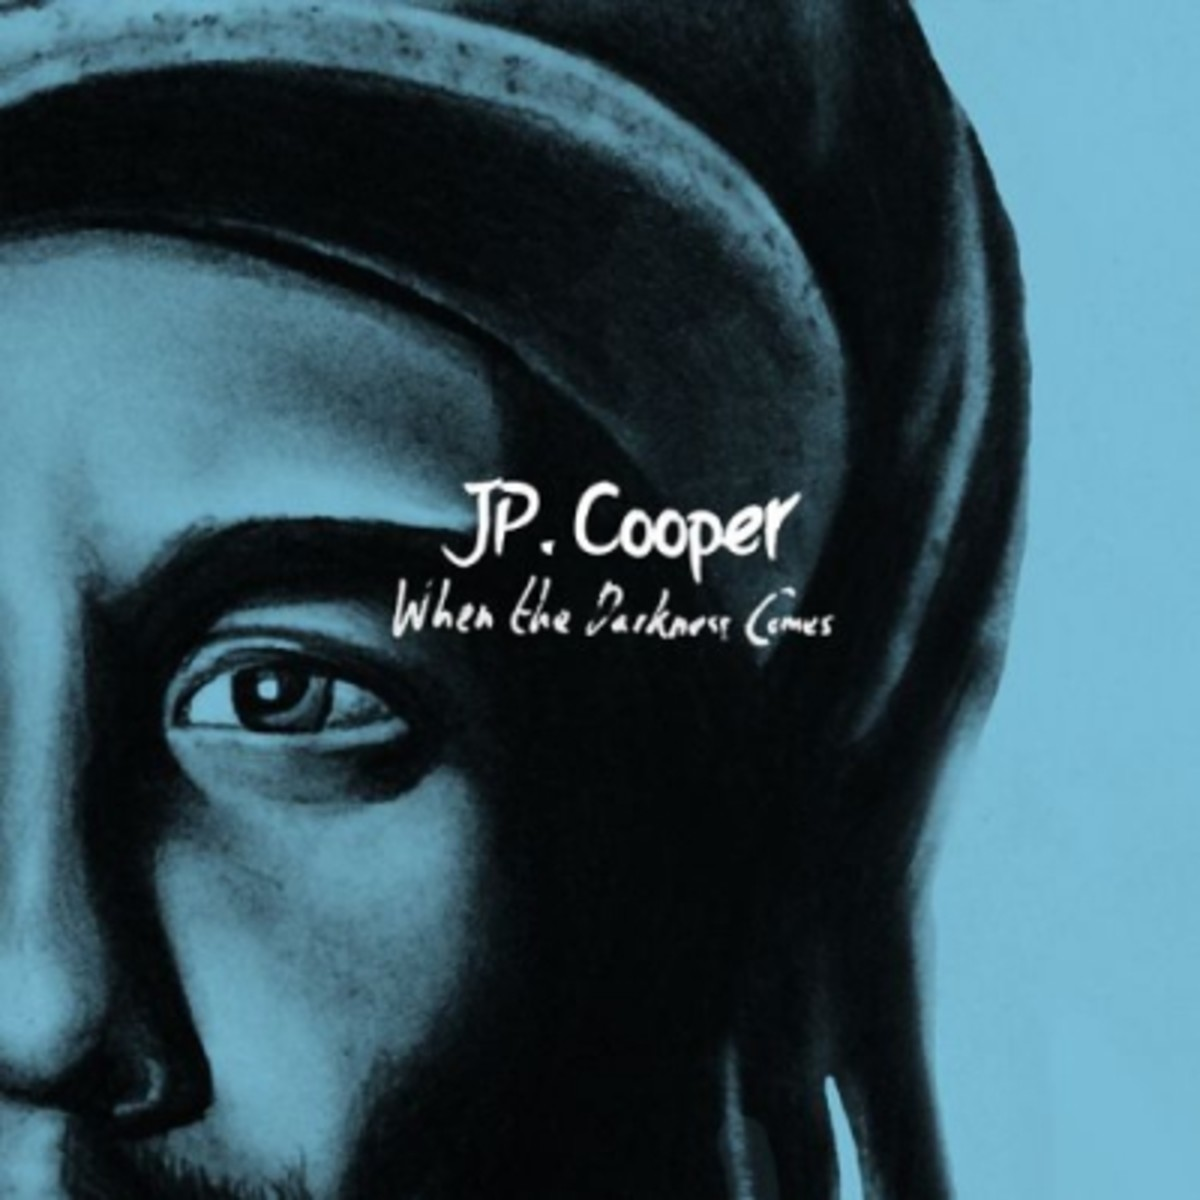 jp-cooper-when-the-darkness-comes.jpg